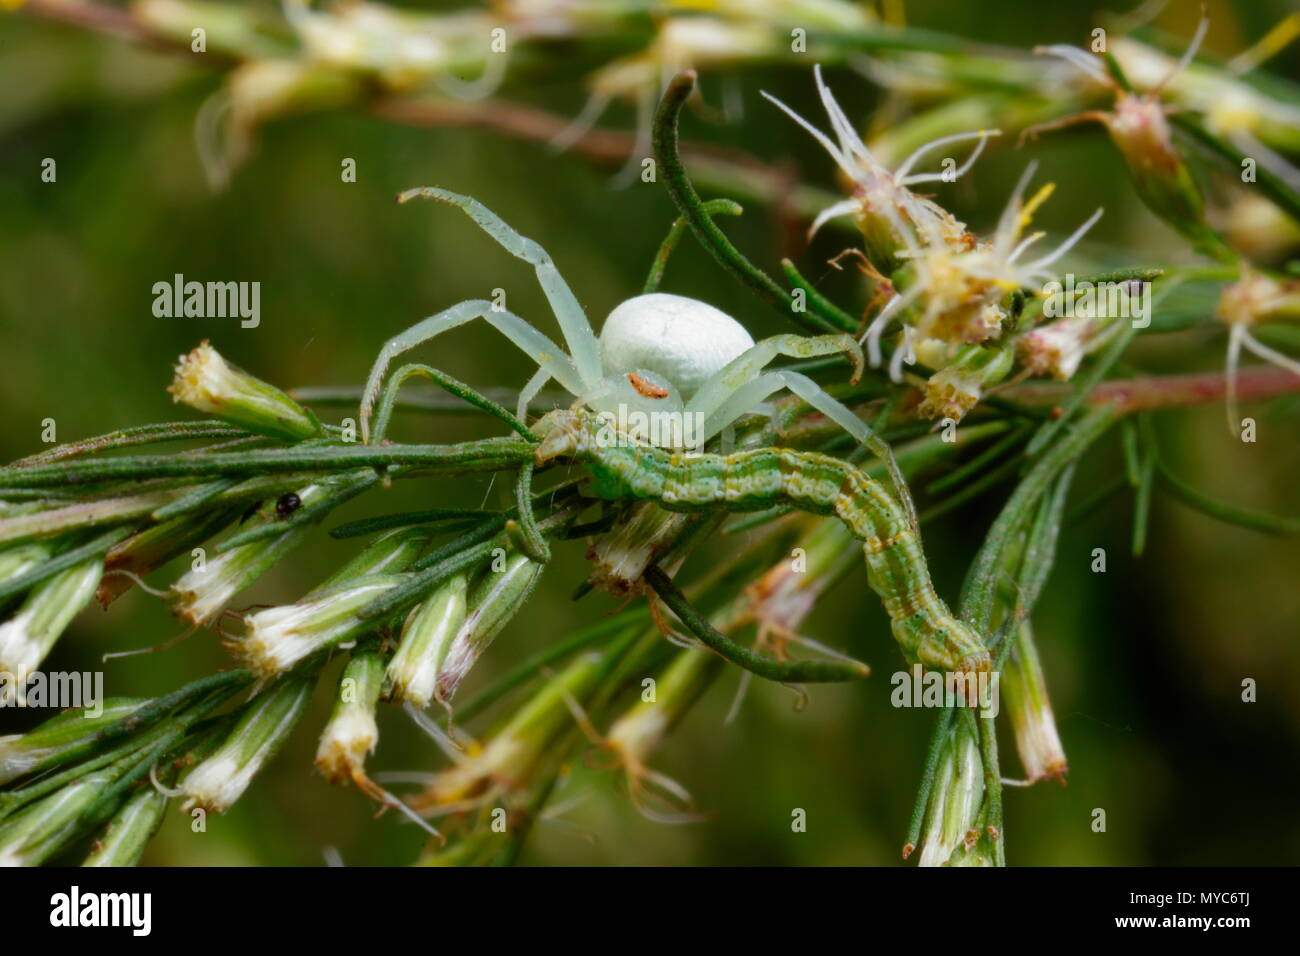 A crab spider, Family thomisidae, in its leafy lair, feeding on a caterpillar it has captured. - Stock Image